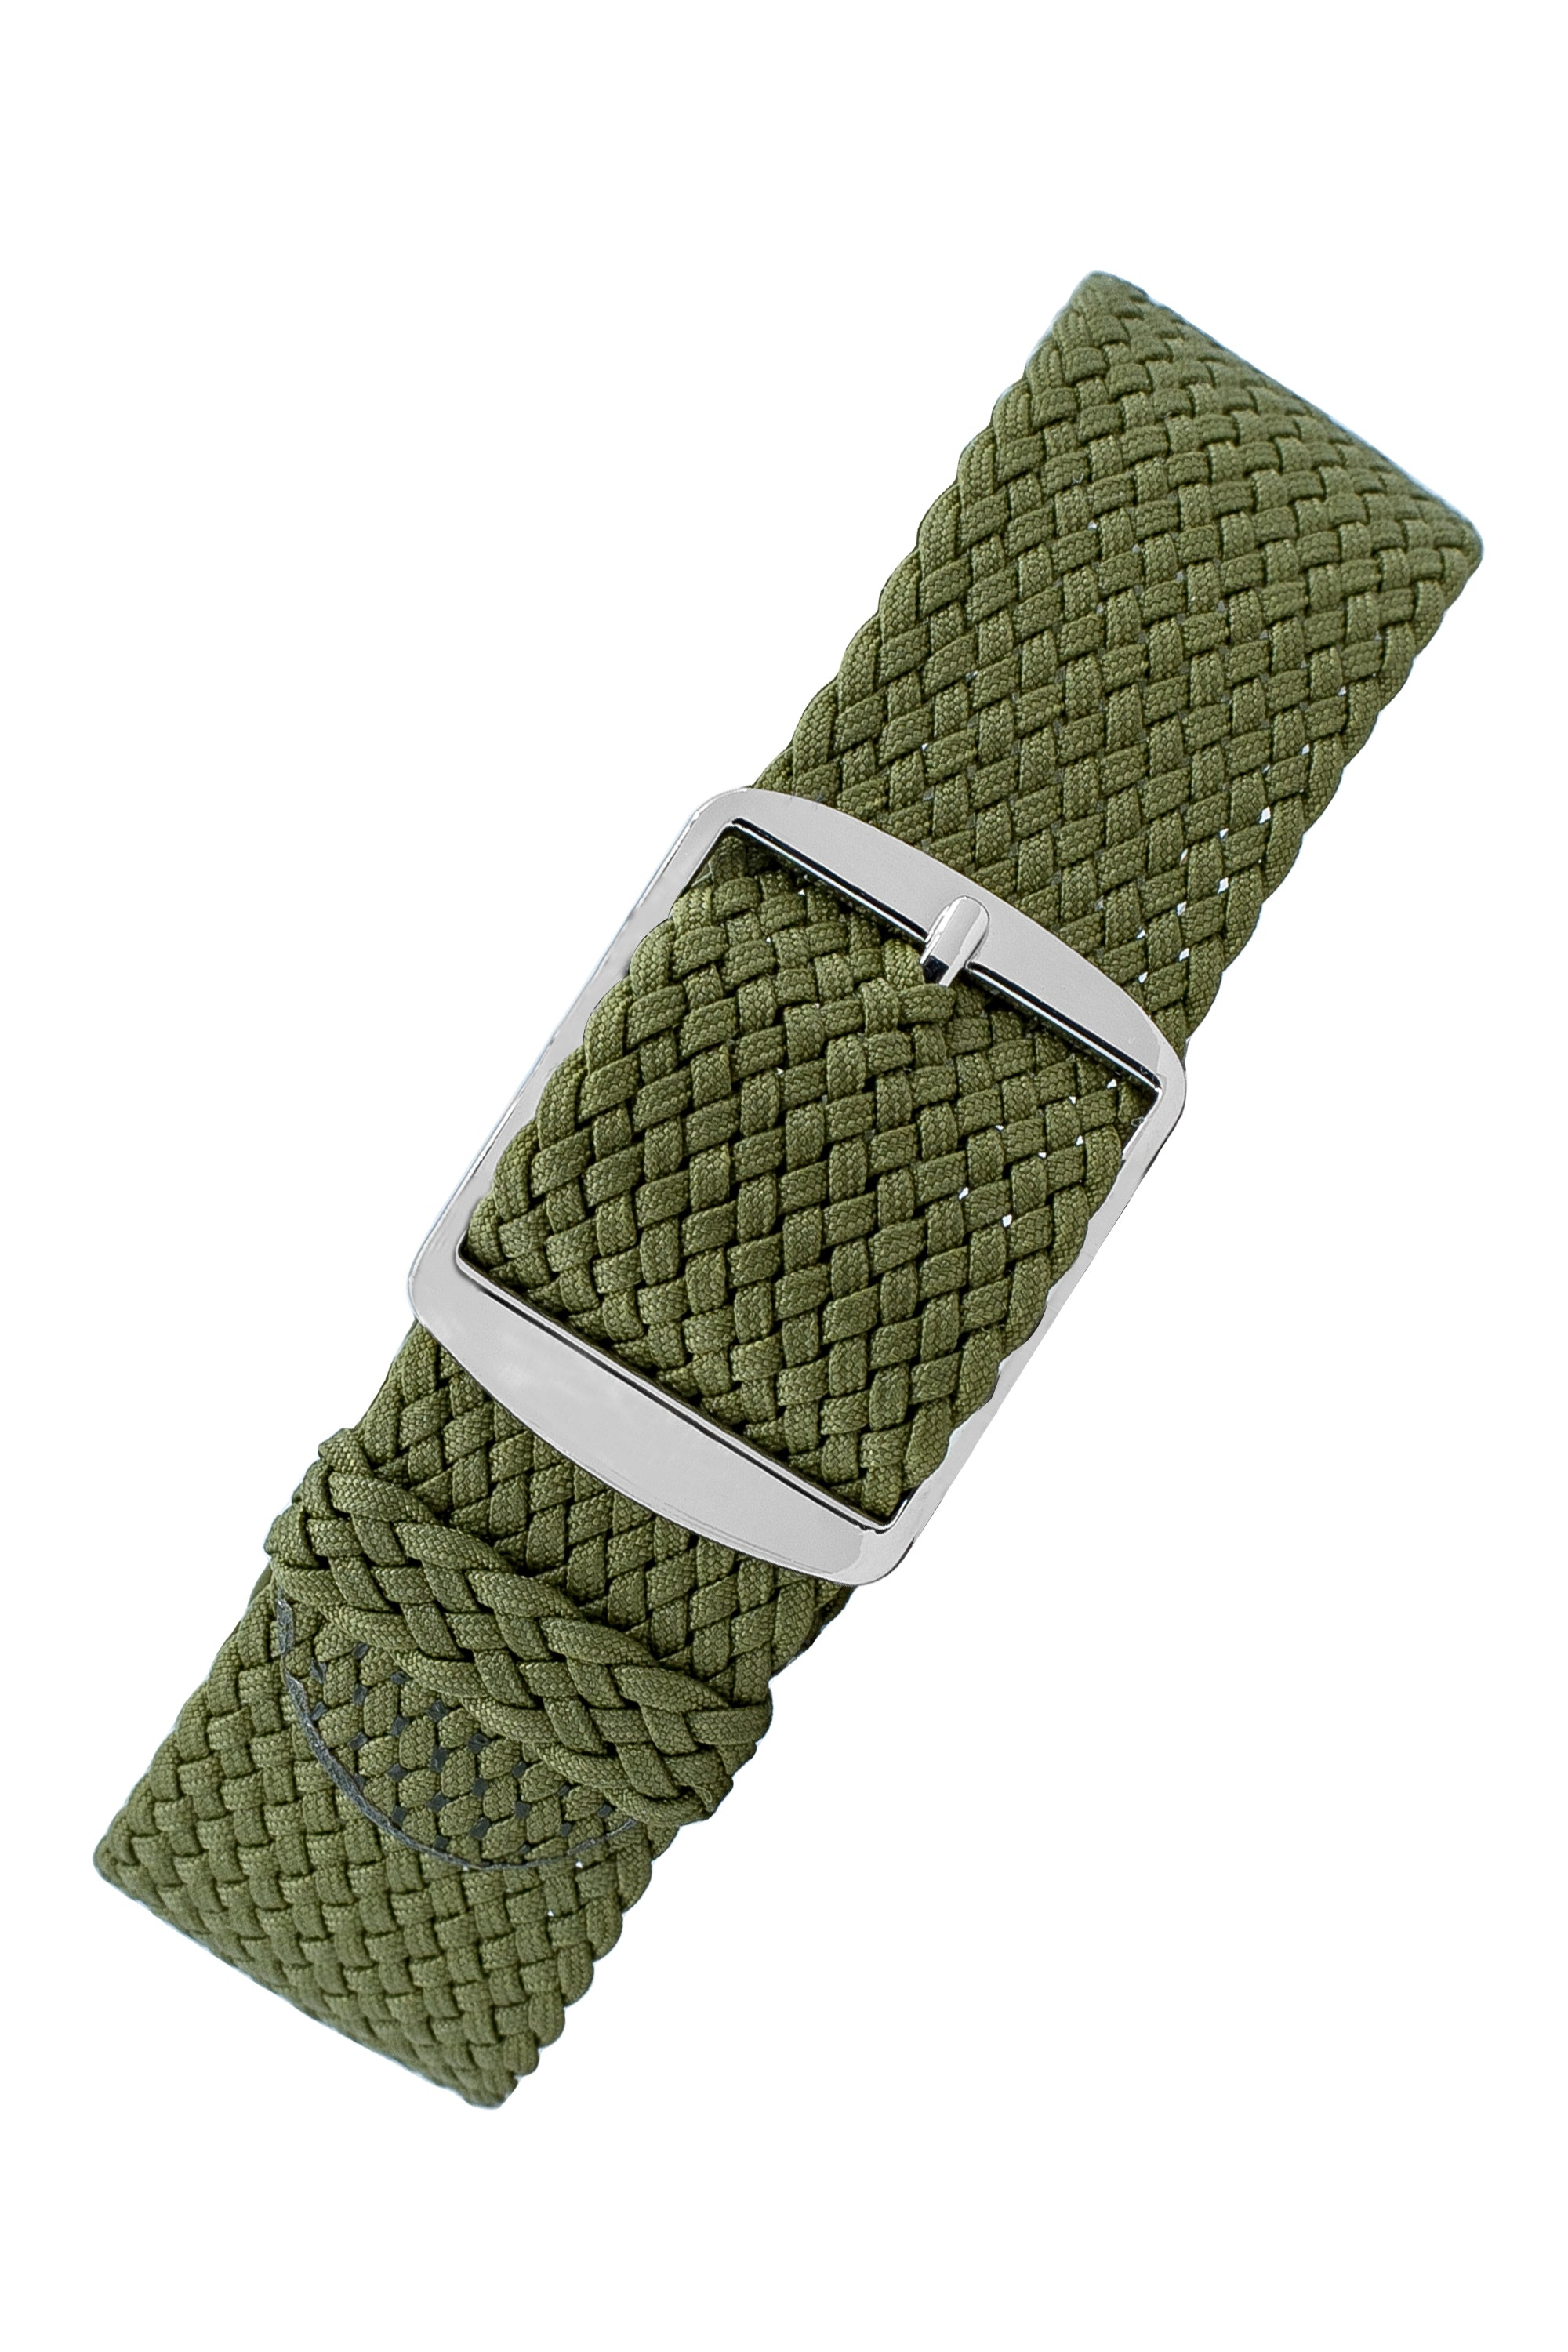 PERLON Braided One Piece Watch Strap & Buckle in MILITARY GREEN